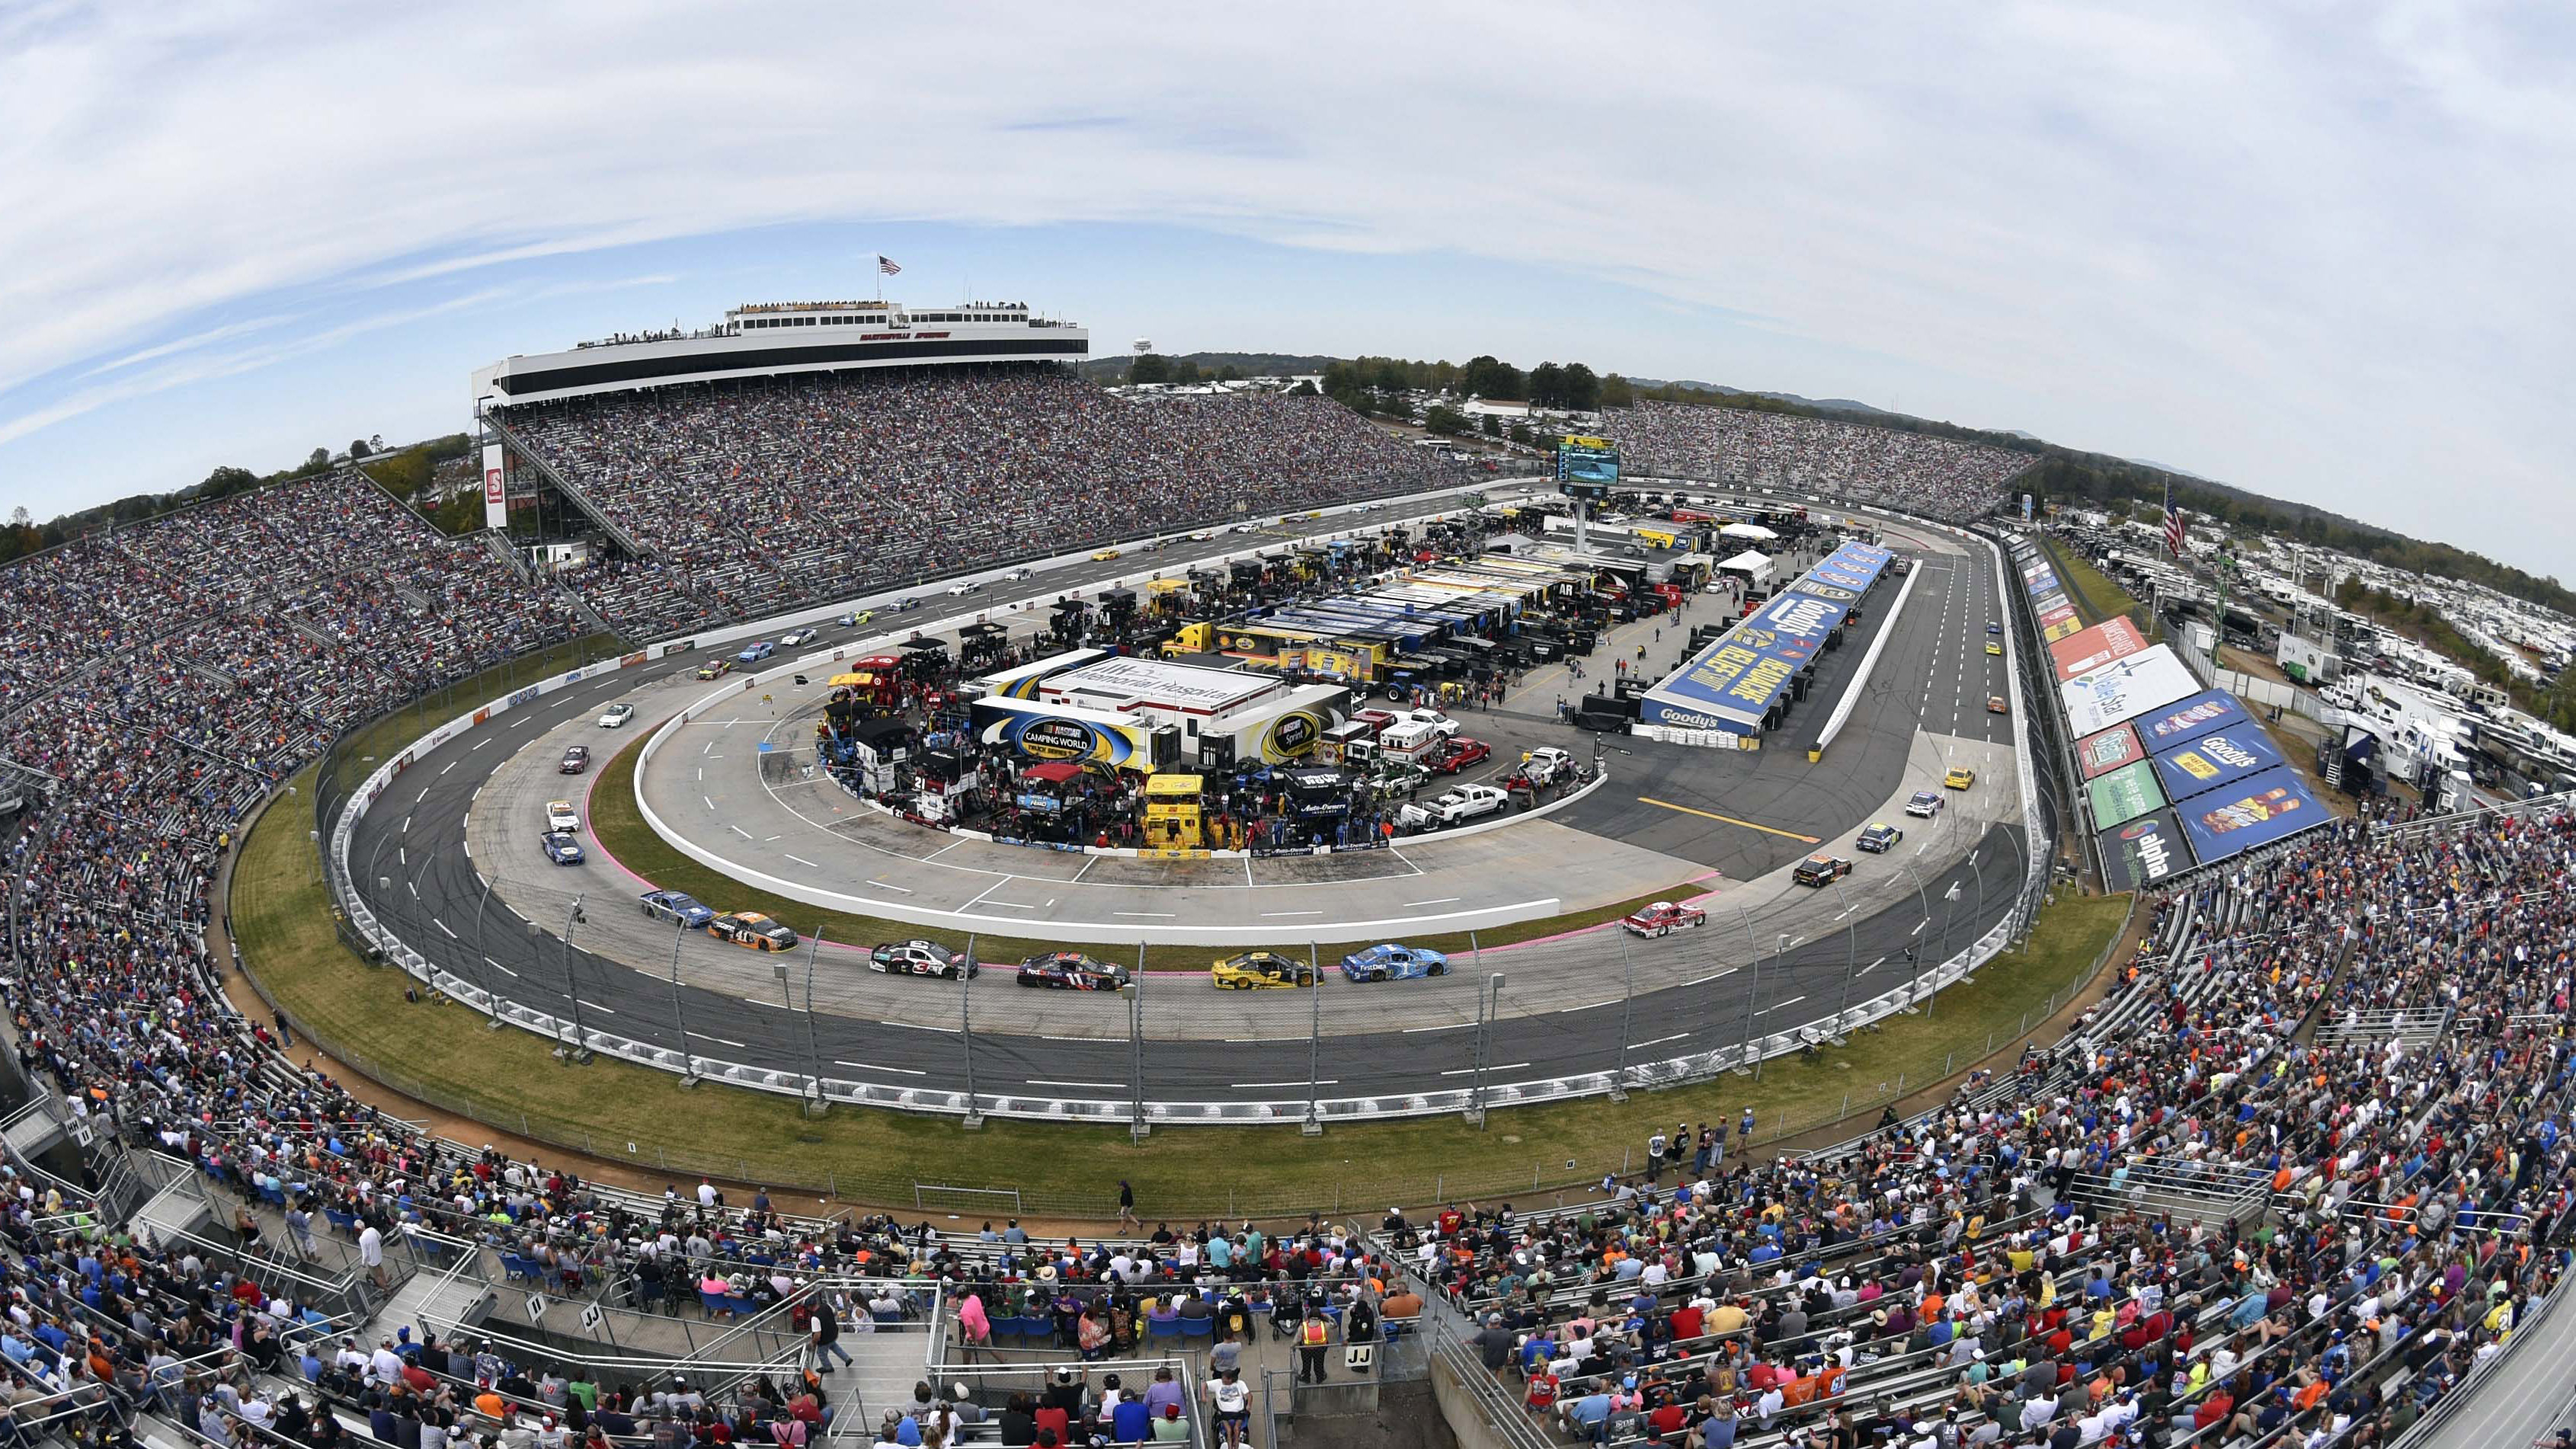 Oct 30, 2016; Martinsville, VA, USA; A general view of Martinsville Speedway during the Goody's Fast Relief 500. Mandatory Credit: Michael Shroyer-USA TODAY Sports